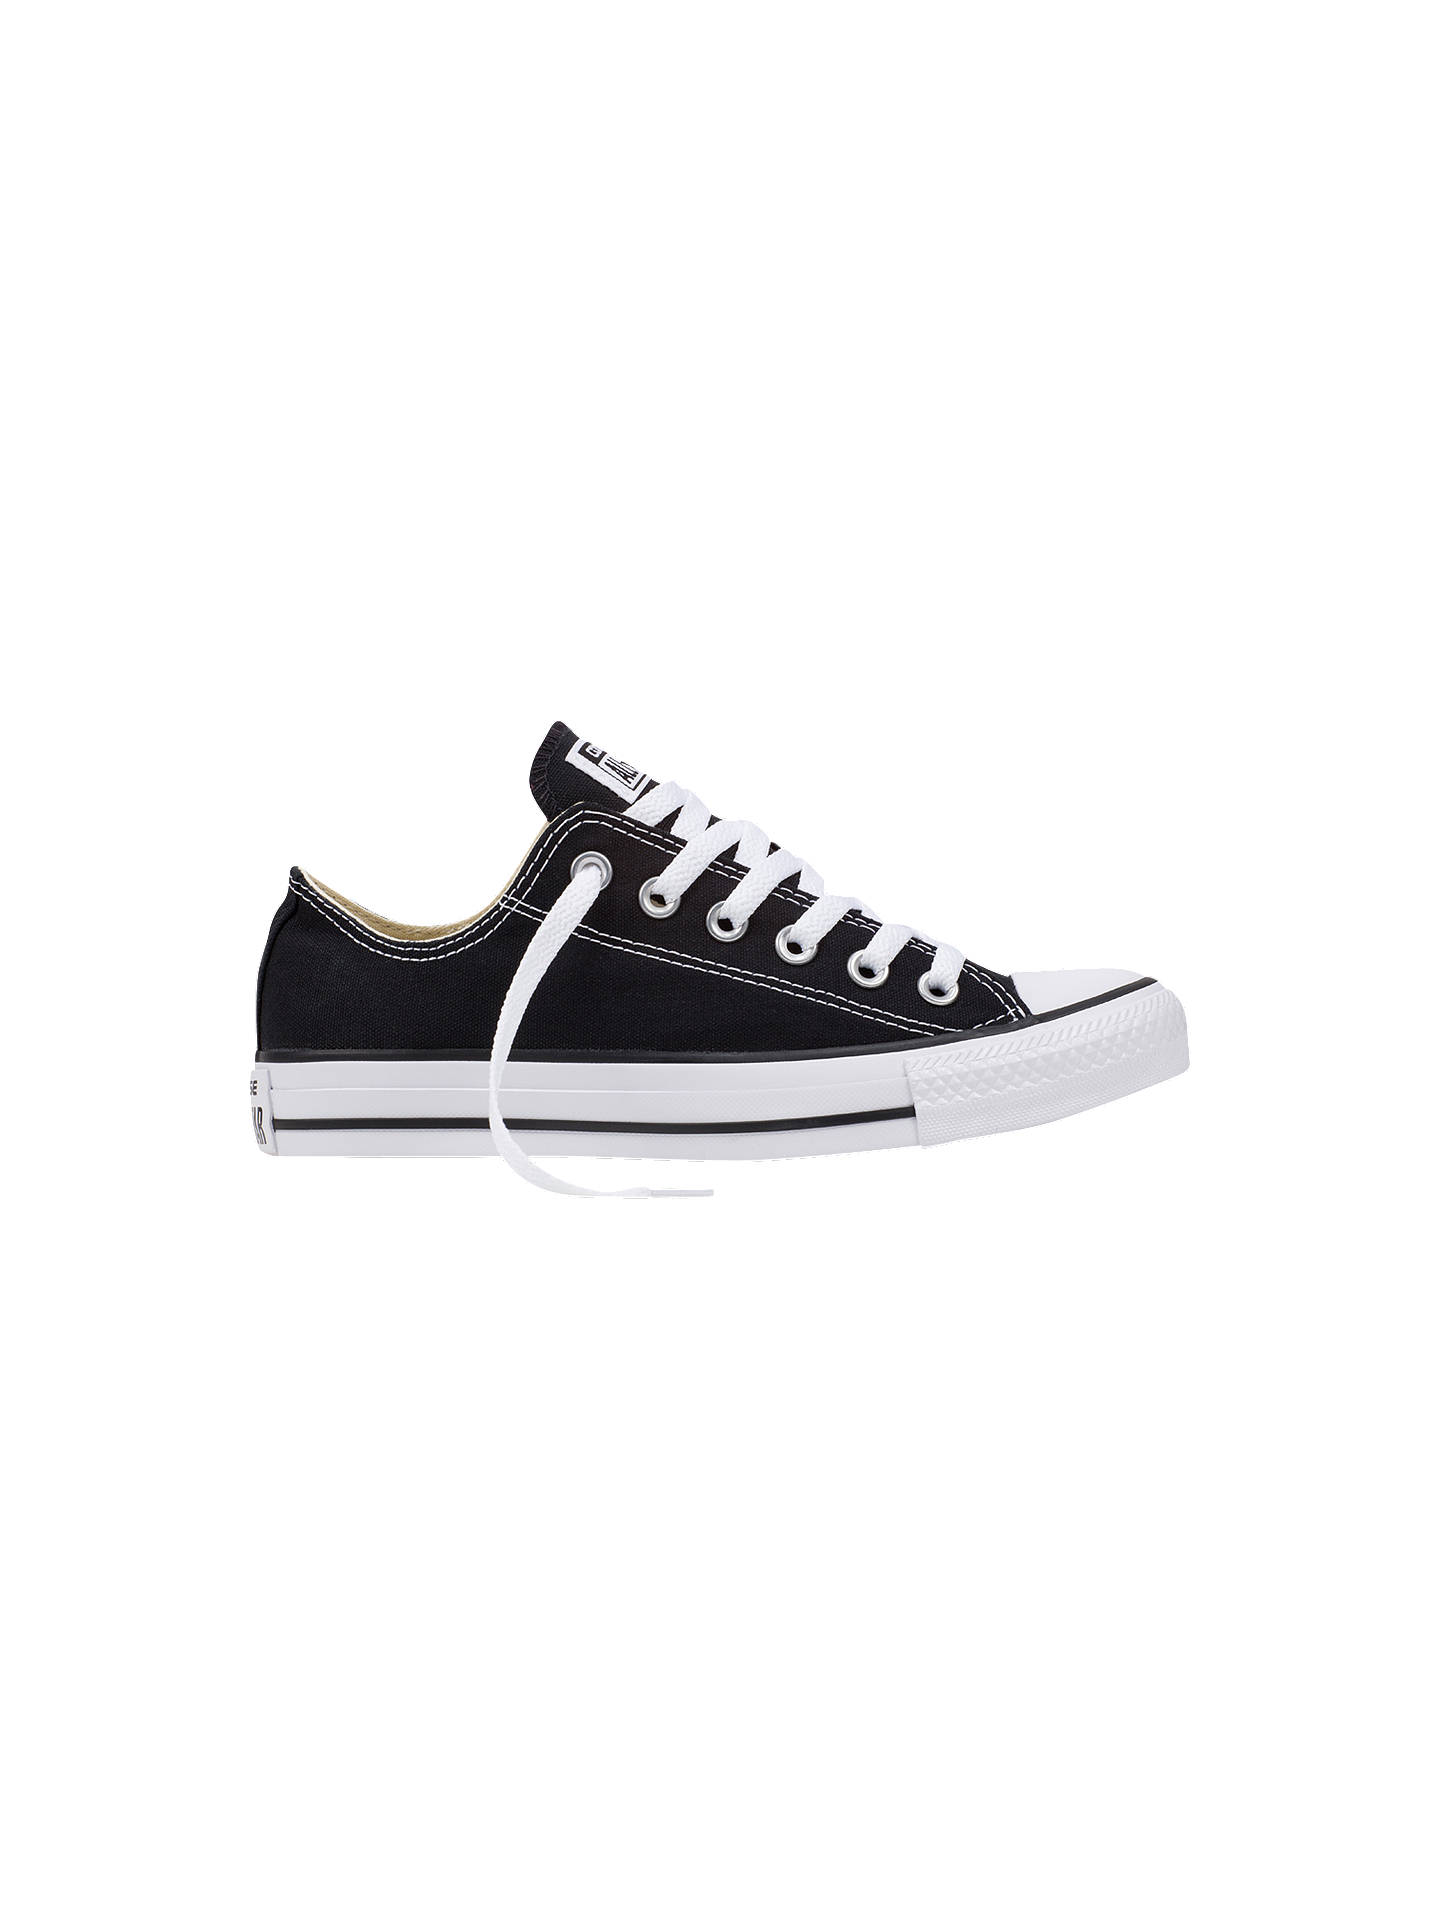 6288fb812739 Converse Chuck Taylor All Star Ox Trainers at John Lewis   Partners